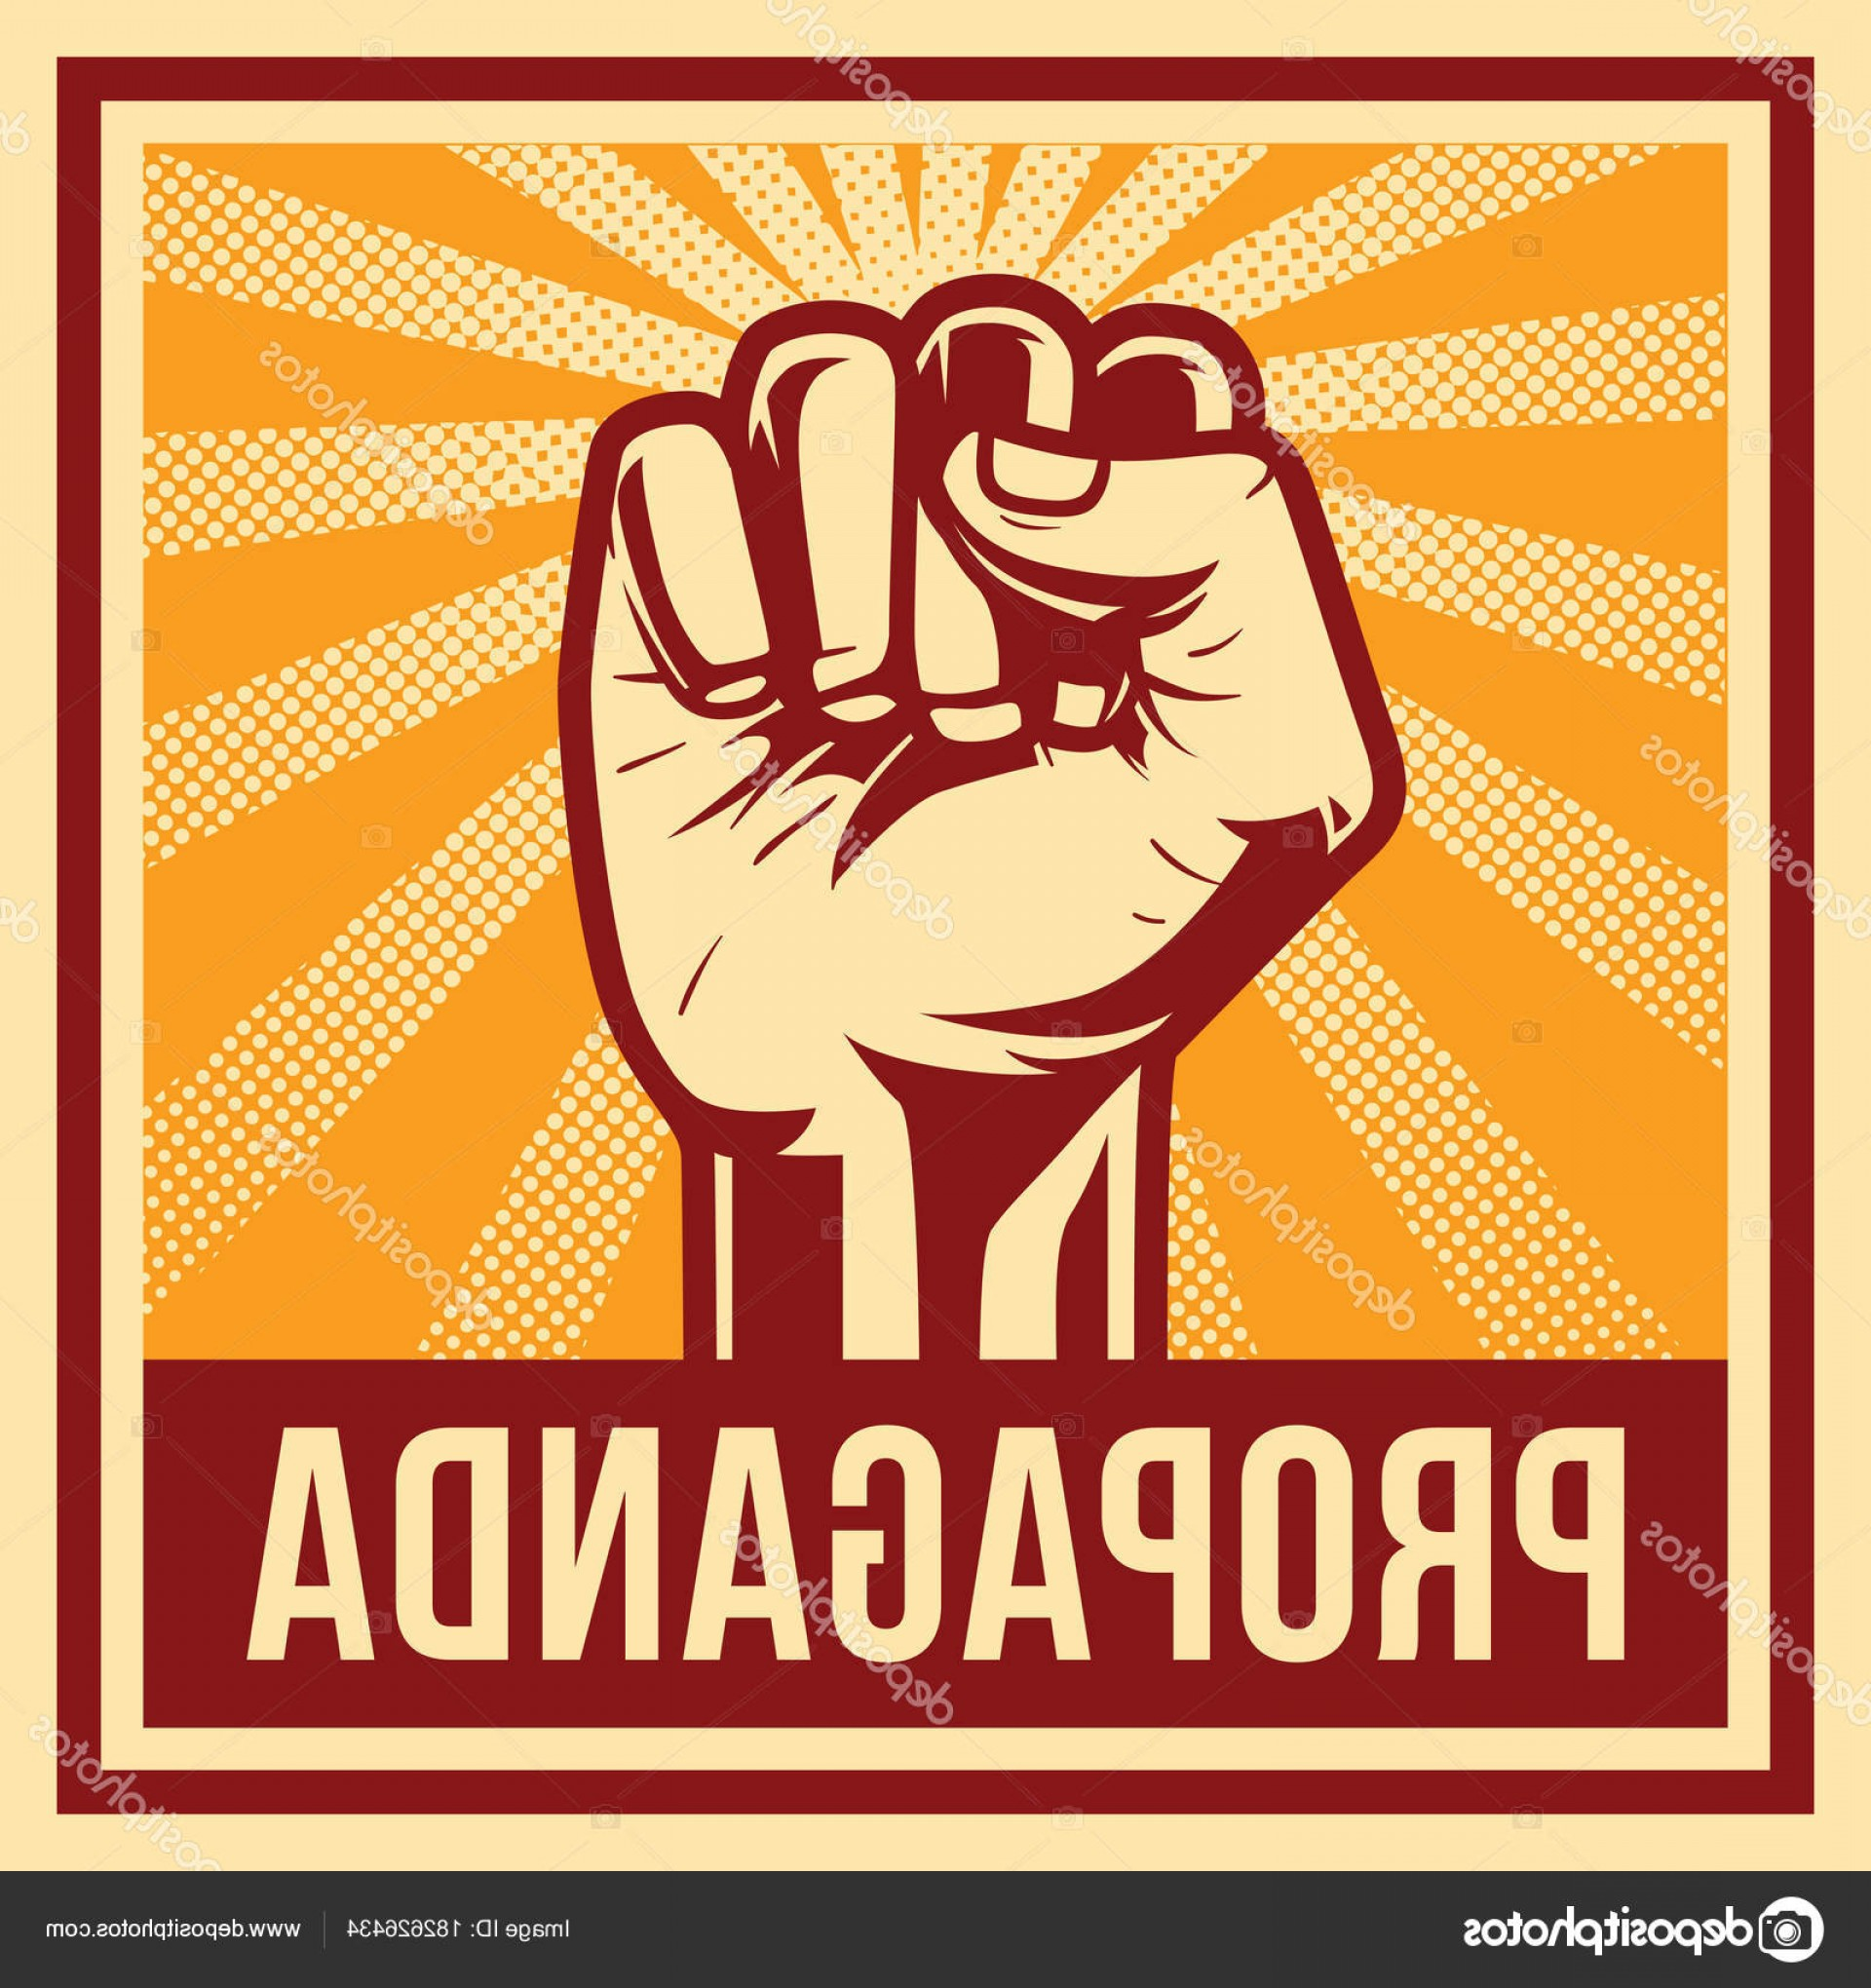 Propaganda Art Poster Vector: Stock Illustration Propaganda Poster Fist Hand